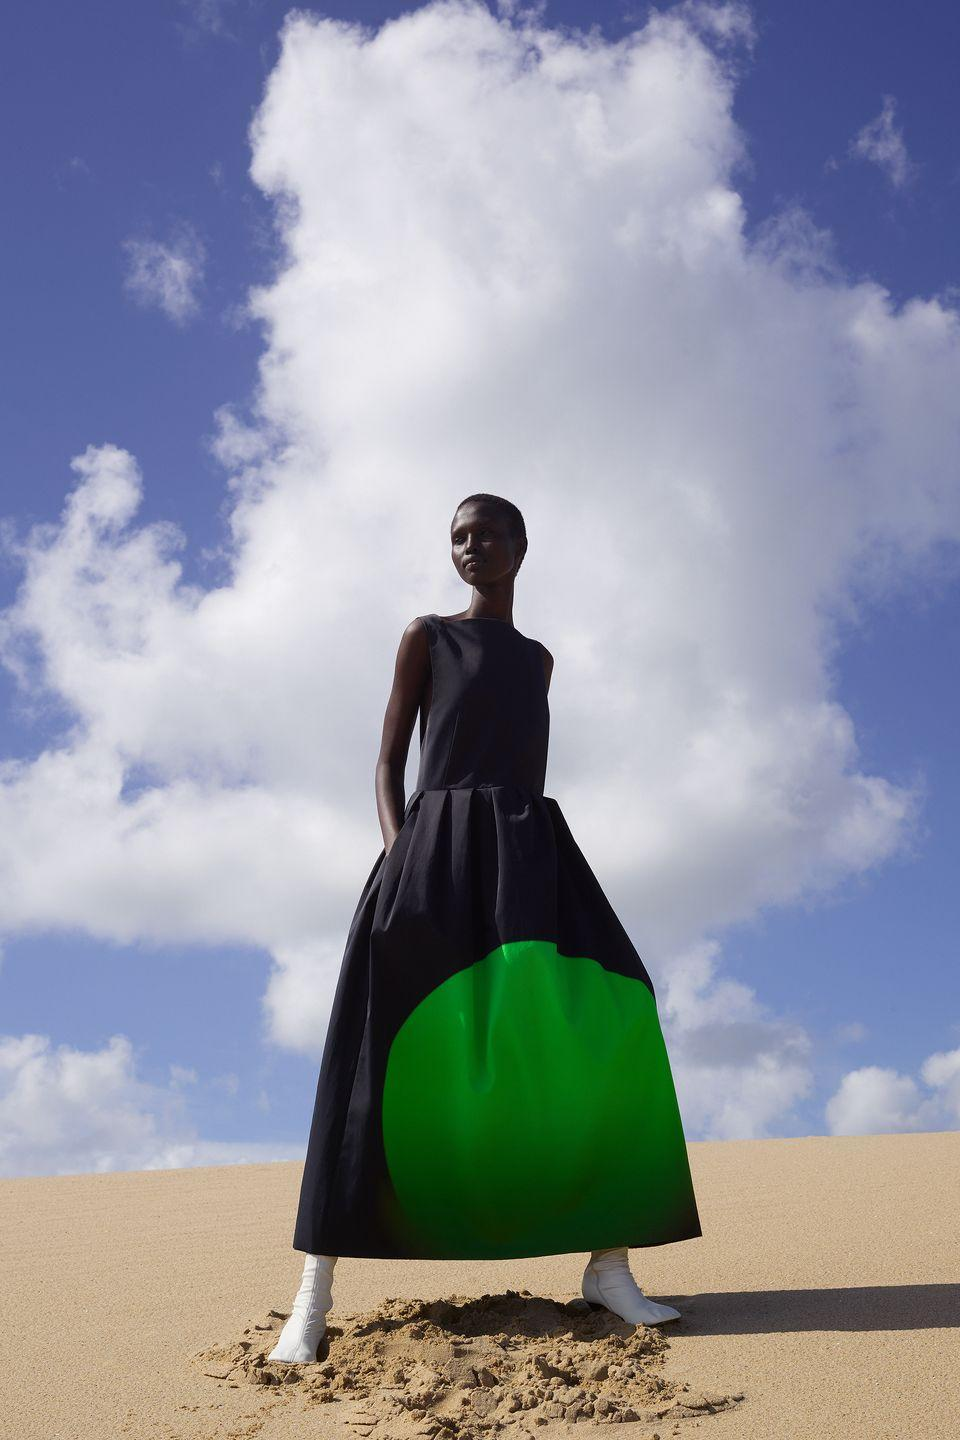 "<p>The Dutch lockdown last spring found designer Dries Van Noten asking big questions: What's going to be important in the future? Is there still going to <em>be</em> fashion in the future? The answer, according to the spring 2021 look book he shot on a beach in Rotterdam with artist Viviane Sassen, is a resounding yes. ""I wanted really to make something that was 'fashion optimistic,'"" he said. That motive translated into a vivid profusion of mood-lifting color; gone were the usual heavy heritage jacquards in favor of floating cotton organzas. Van Noten drew inspiration from the color-drenched experimental films of Len Lye, an early 20th-century artist who painted directly on celluloid, decades before the psychedelic movement. What appeared as simple stripes on balloon-sleeve dresses, belted coats, and bathing suits (a first for the brand) were, in fact, shards of light cast through a louver shutter, captured, and printed. Van Noten put it best: ""The total look of the collection looks more simple but it's more in depth."" <em>—Alison S. Cohn</em></p>"